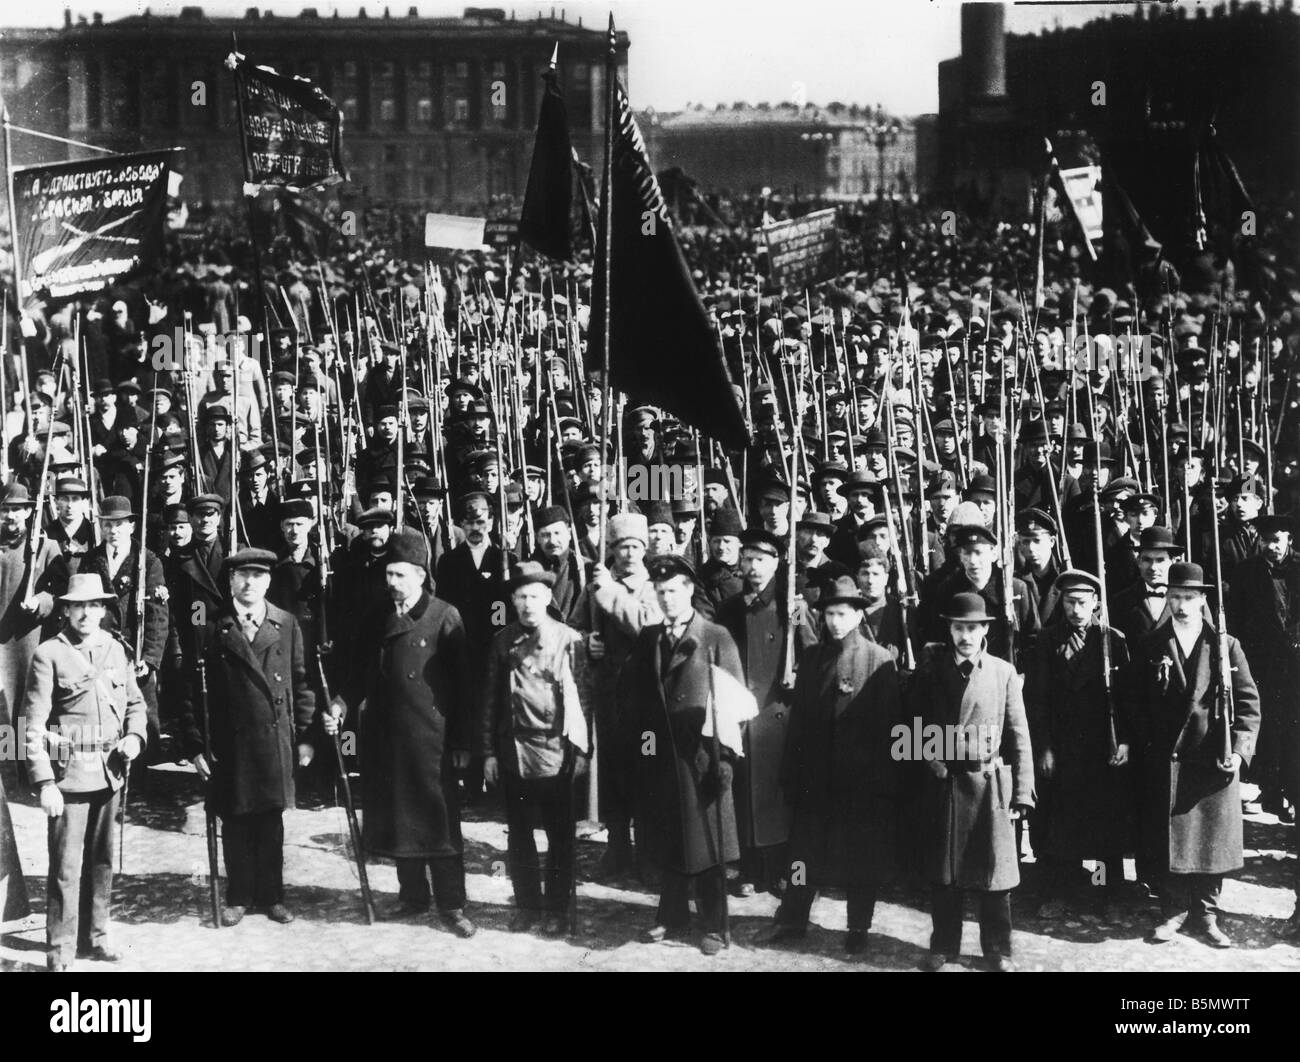 a history of the middle of the russian revolution in 1917 But russia is a vast country with a complicated history, whose politics and   bolshevik revolution in 1917, 100 years after the fact, in russia itself  young  middle-class lawyers and university teachers and students joined.